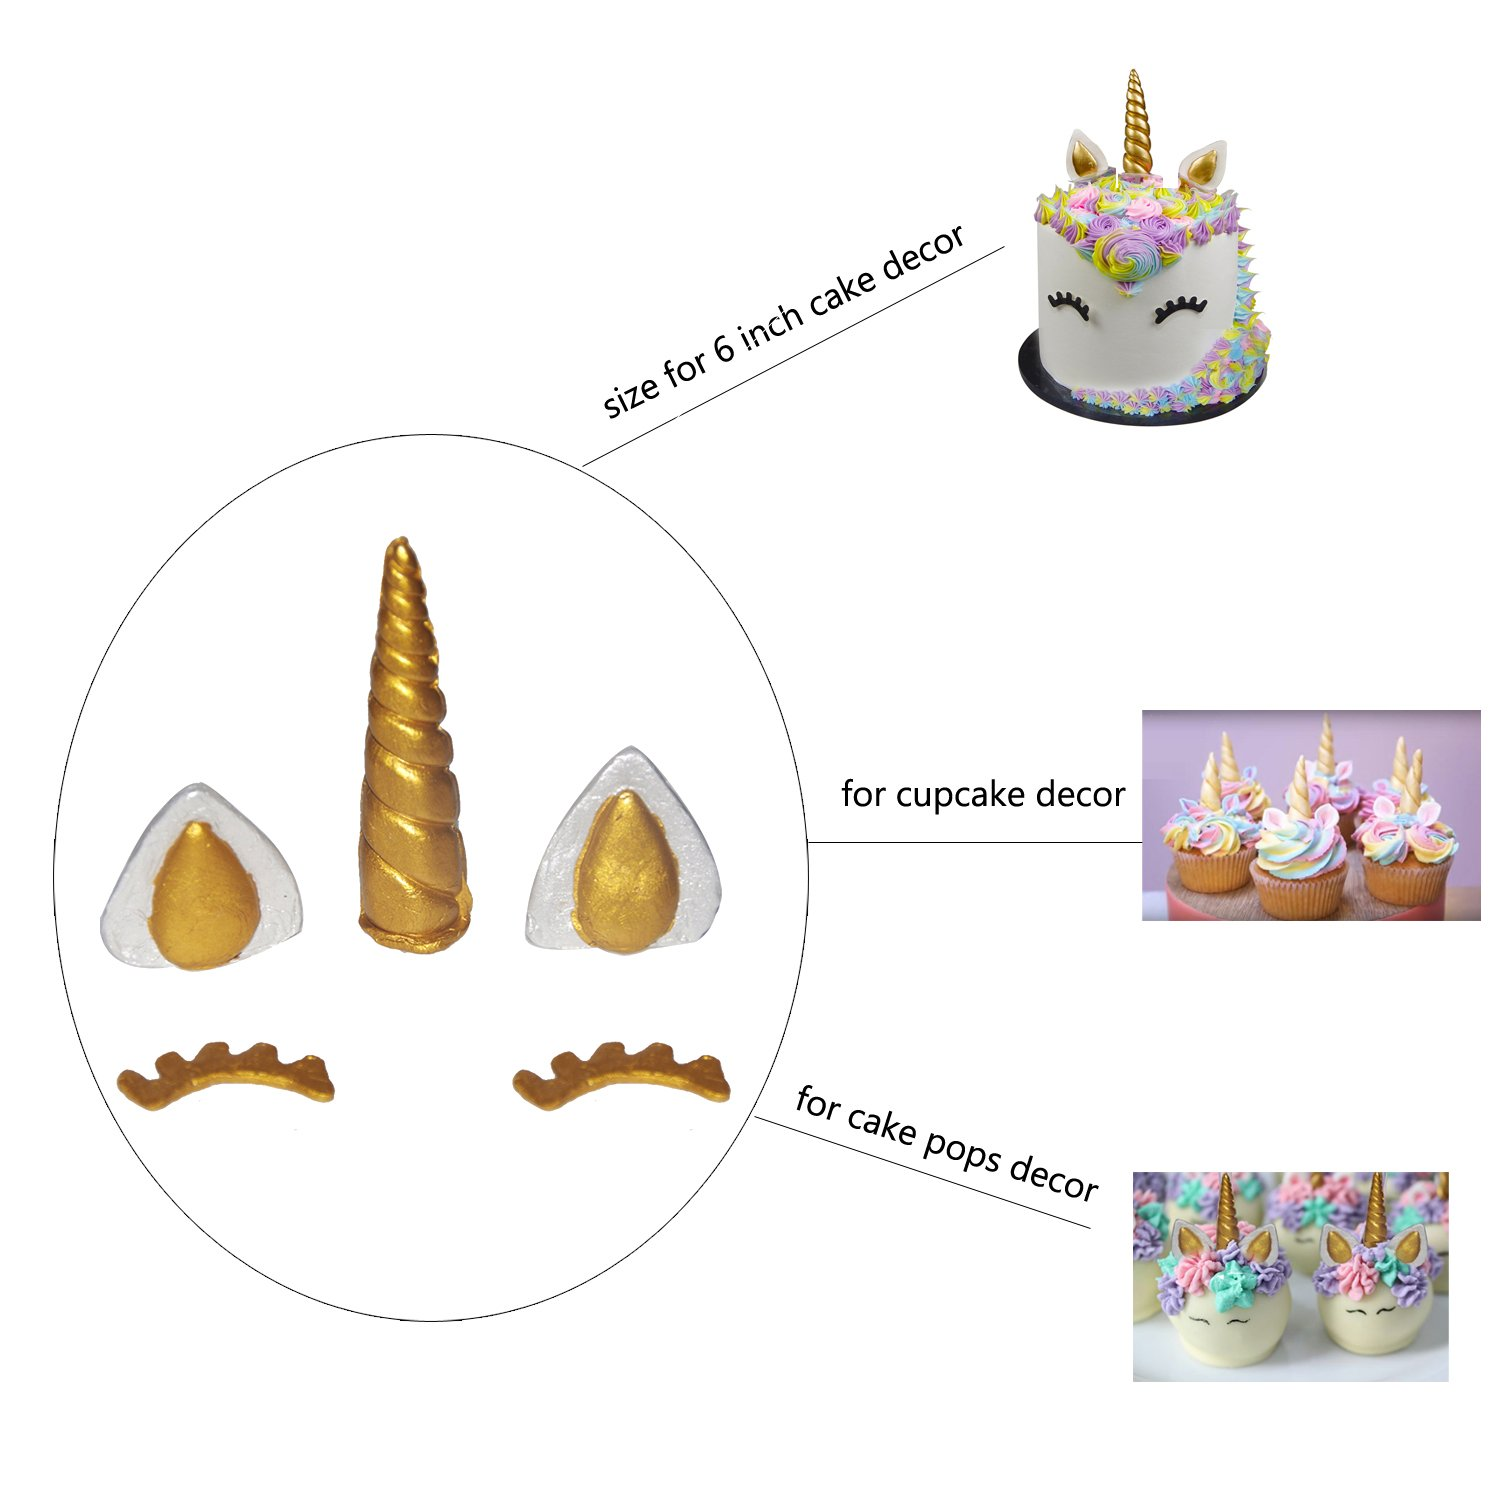 Amazon.com: Silicone Unicorn Horn Mold With Ears and Eyes Set For Fondant Chocolates Unicorn Cake Toppers: Kitchen & Dining